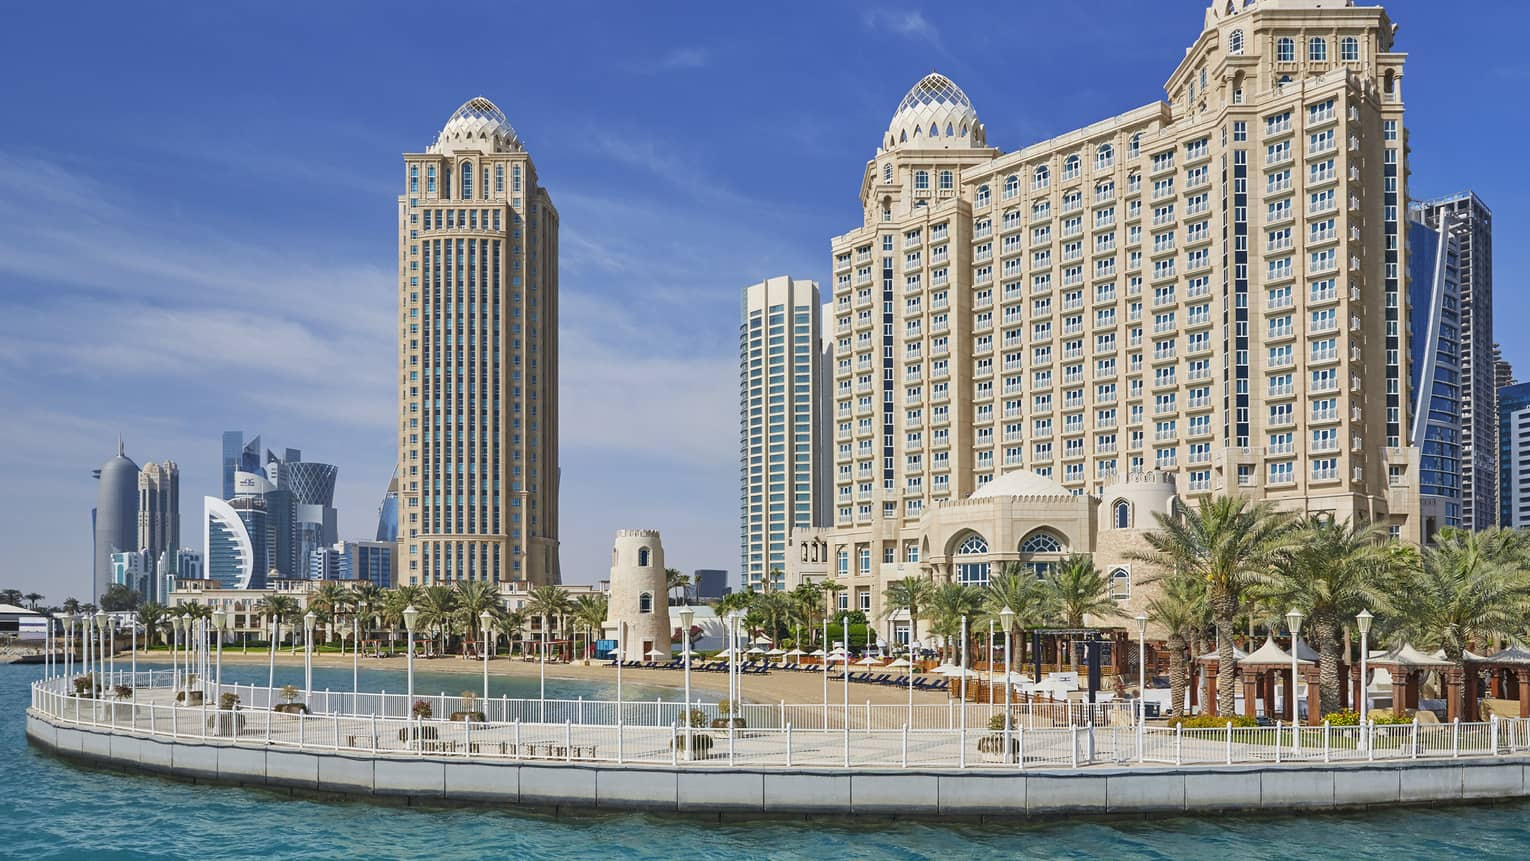 Four Seasons Doha hotel high rise building exterior, beach and palm trees